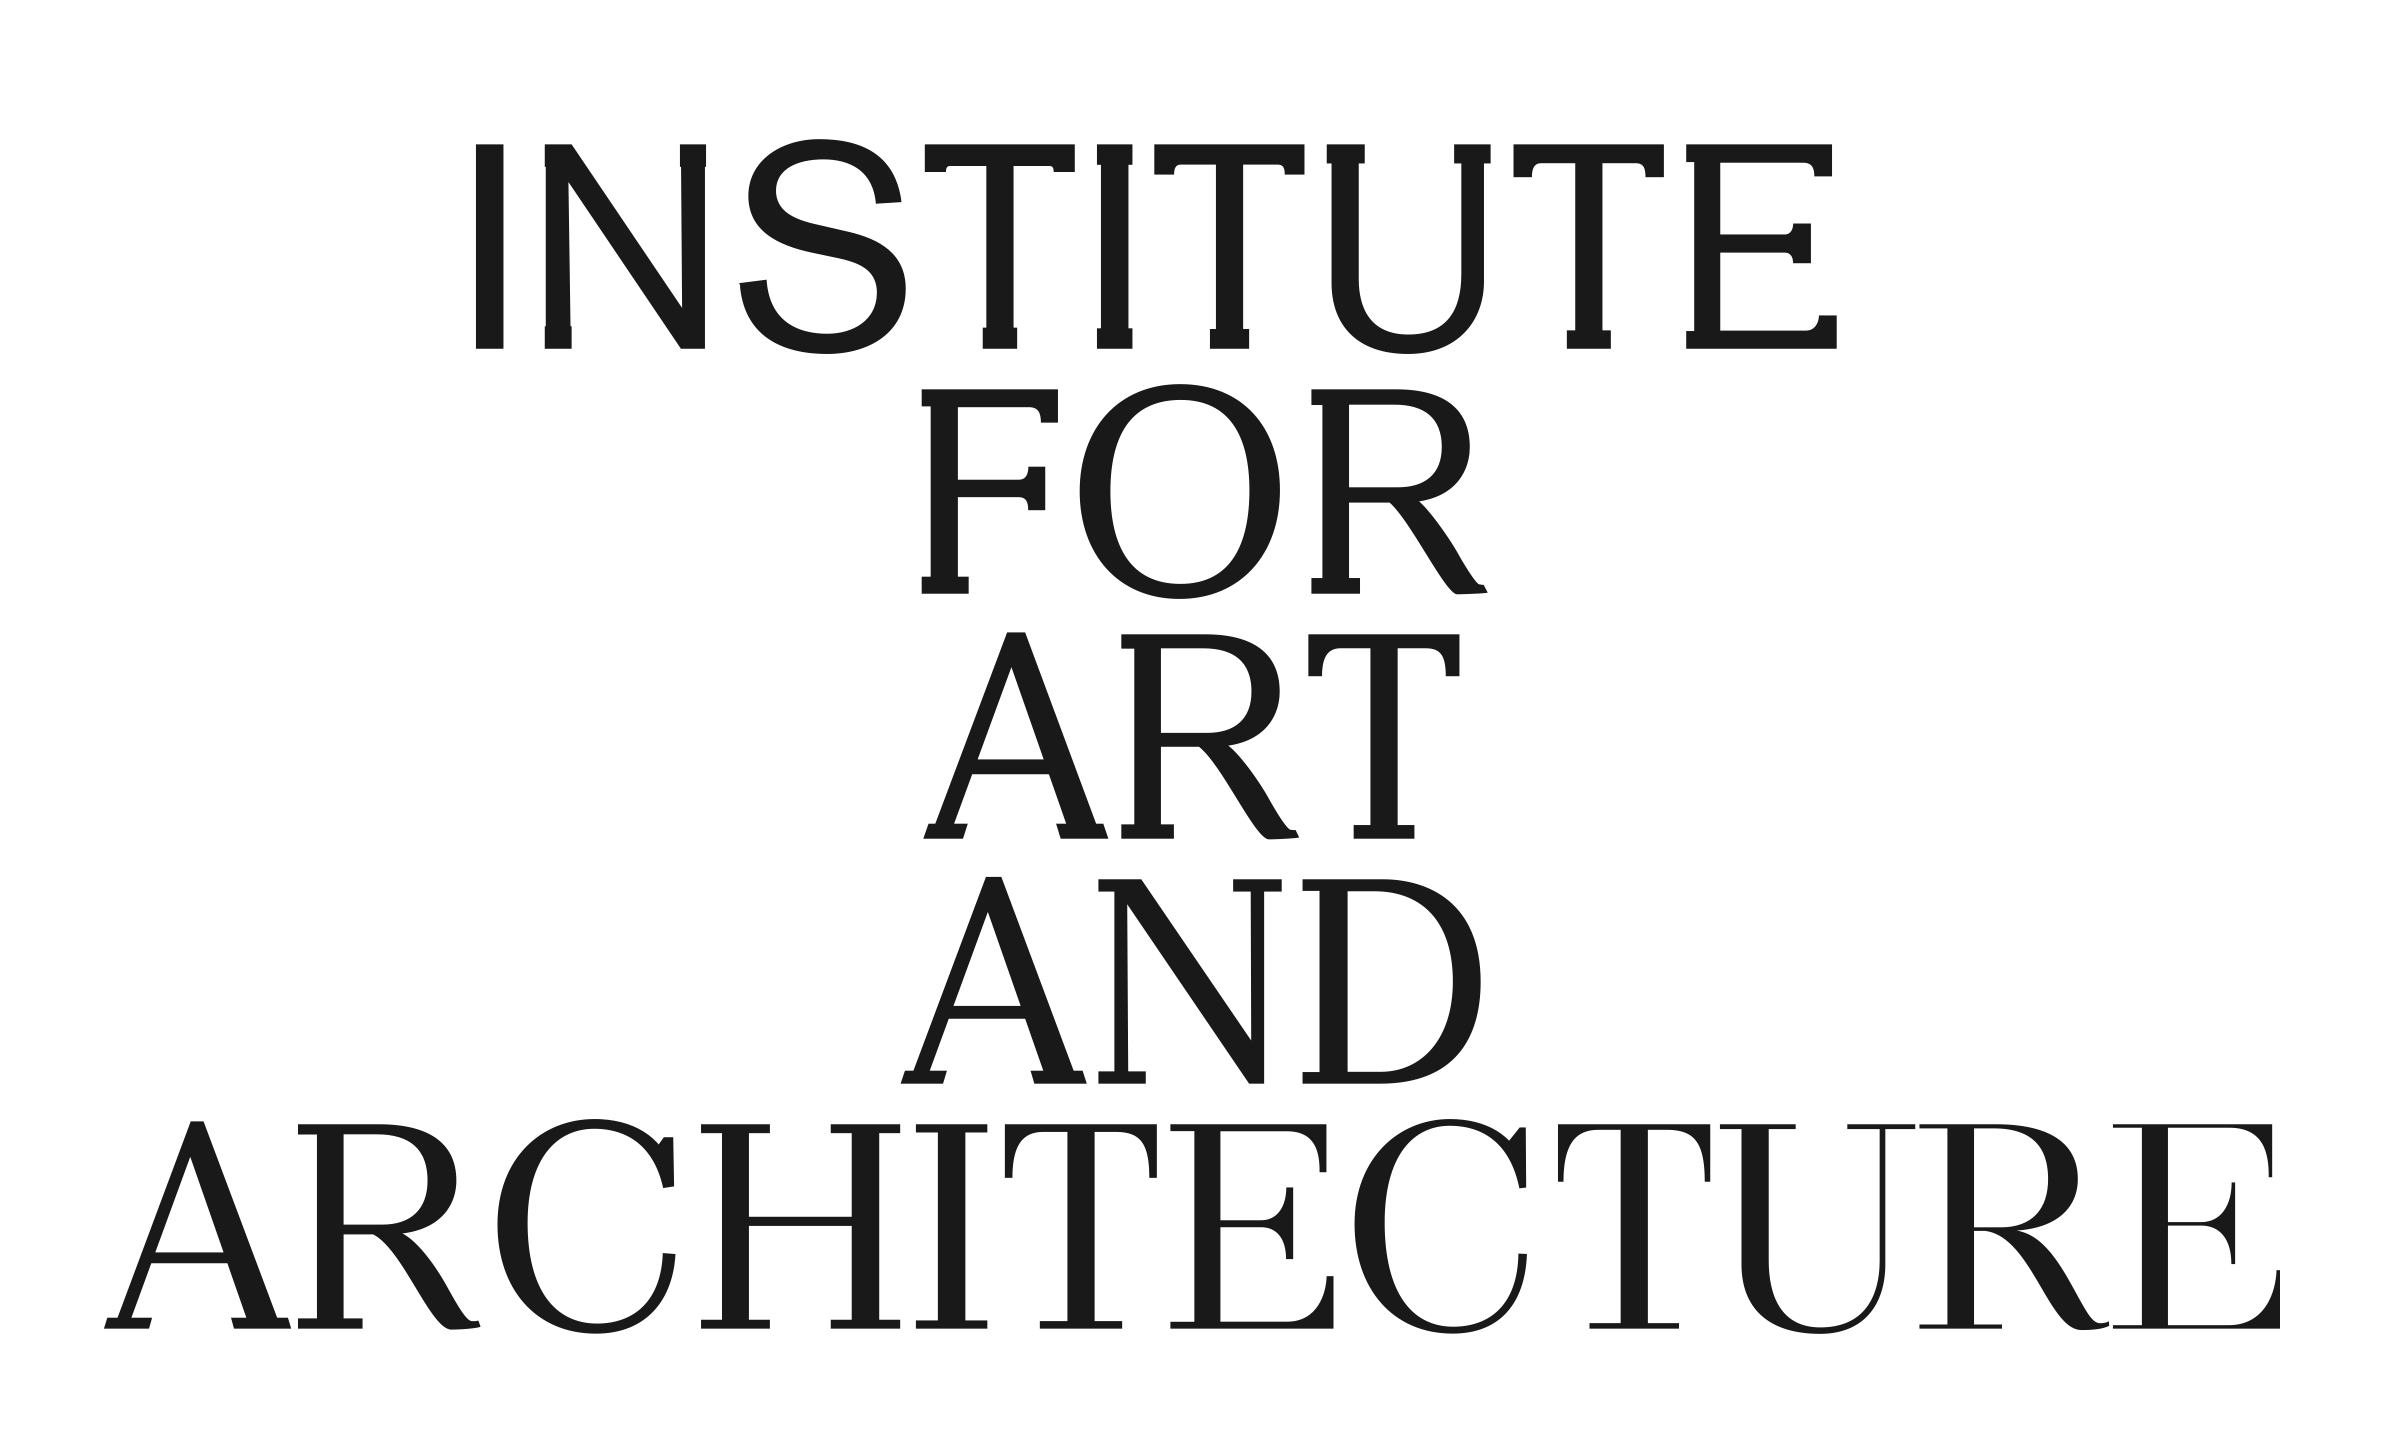 Institute for Art and Architecture